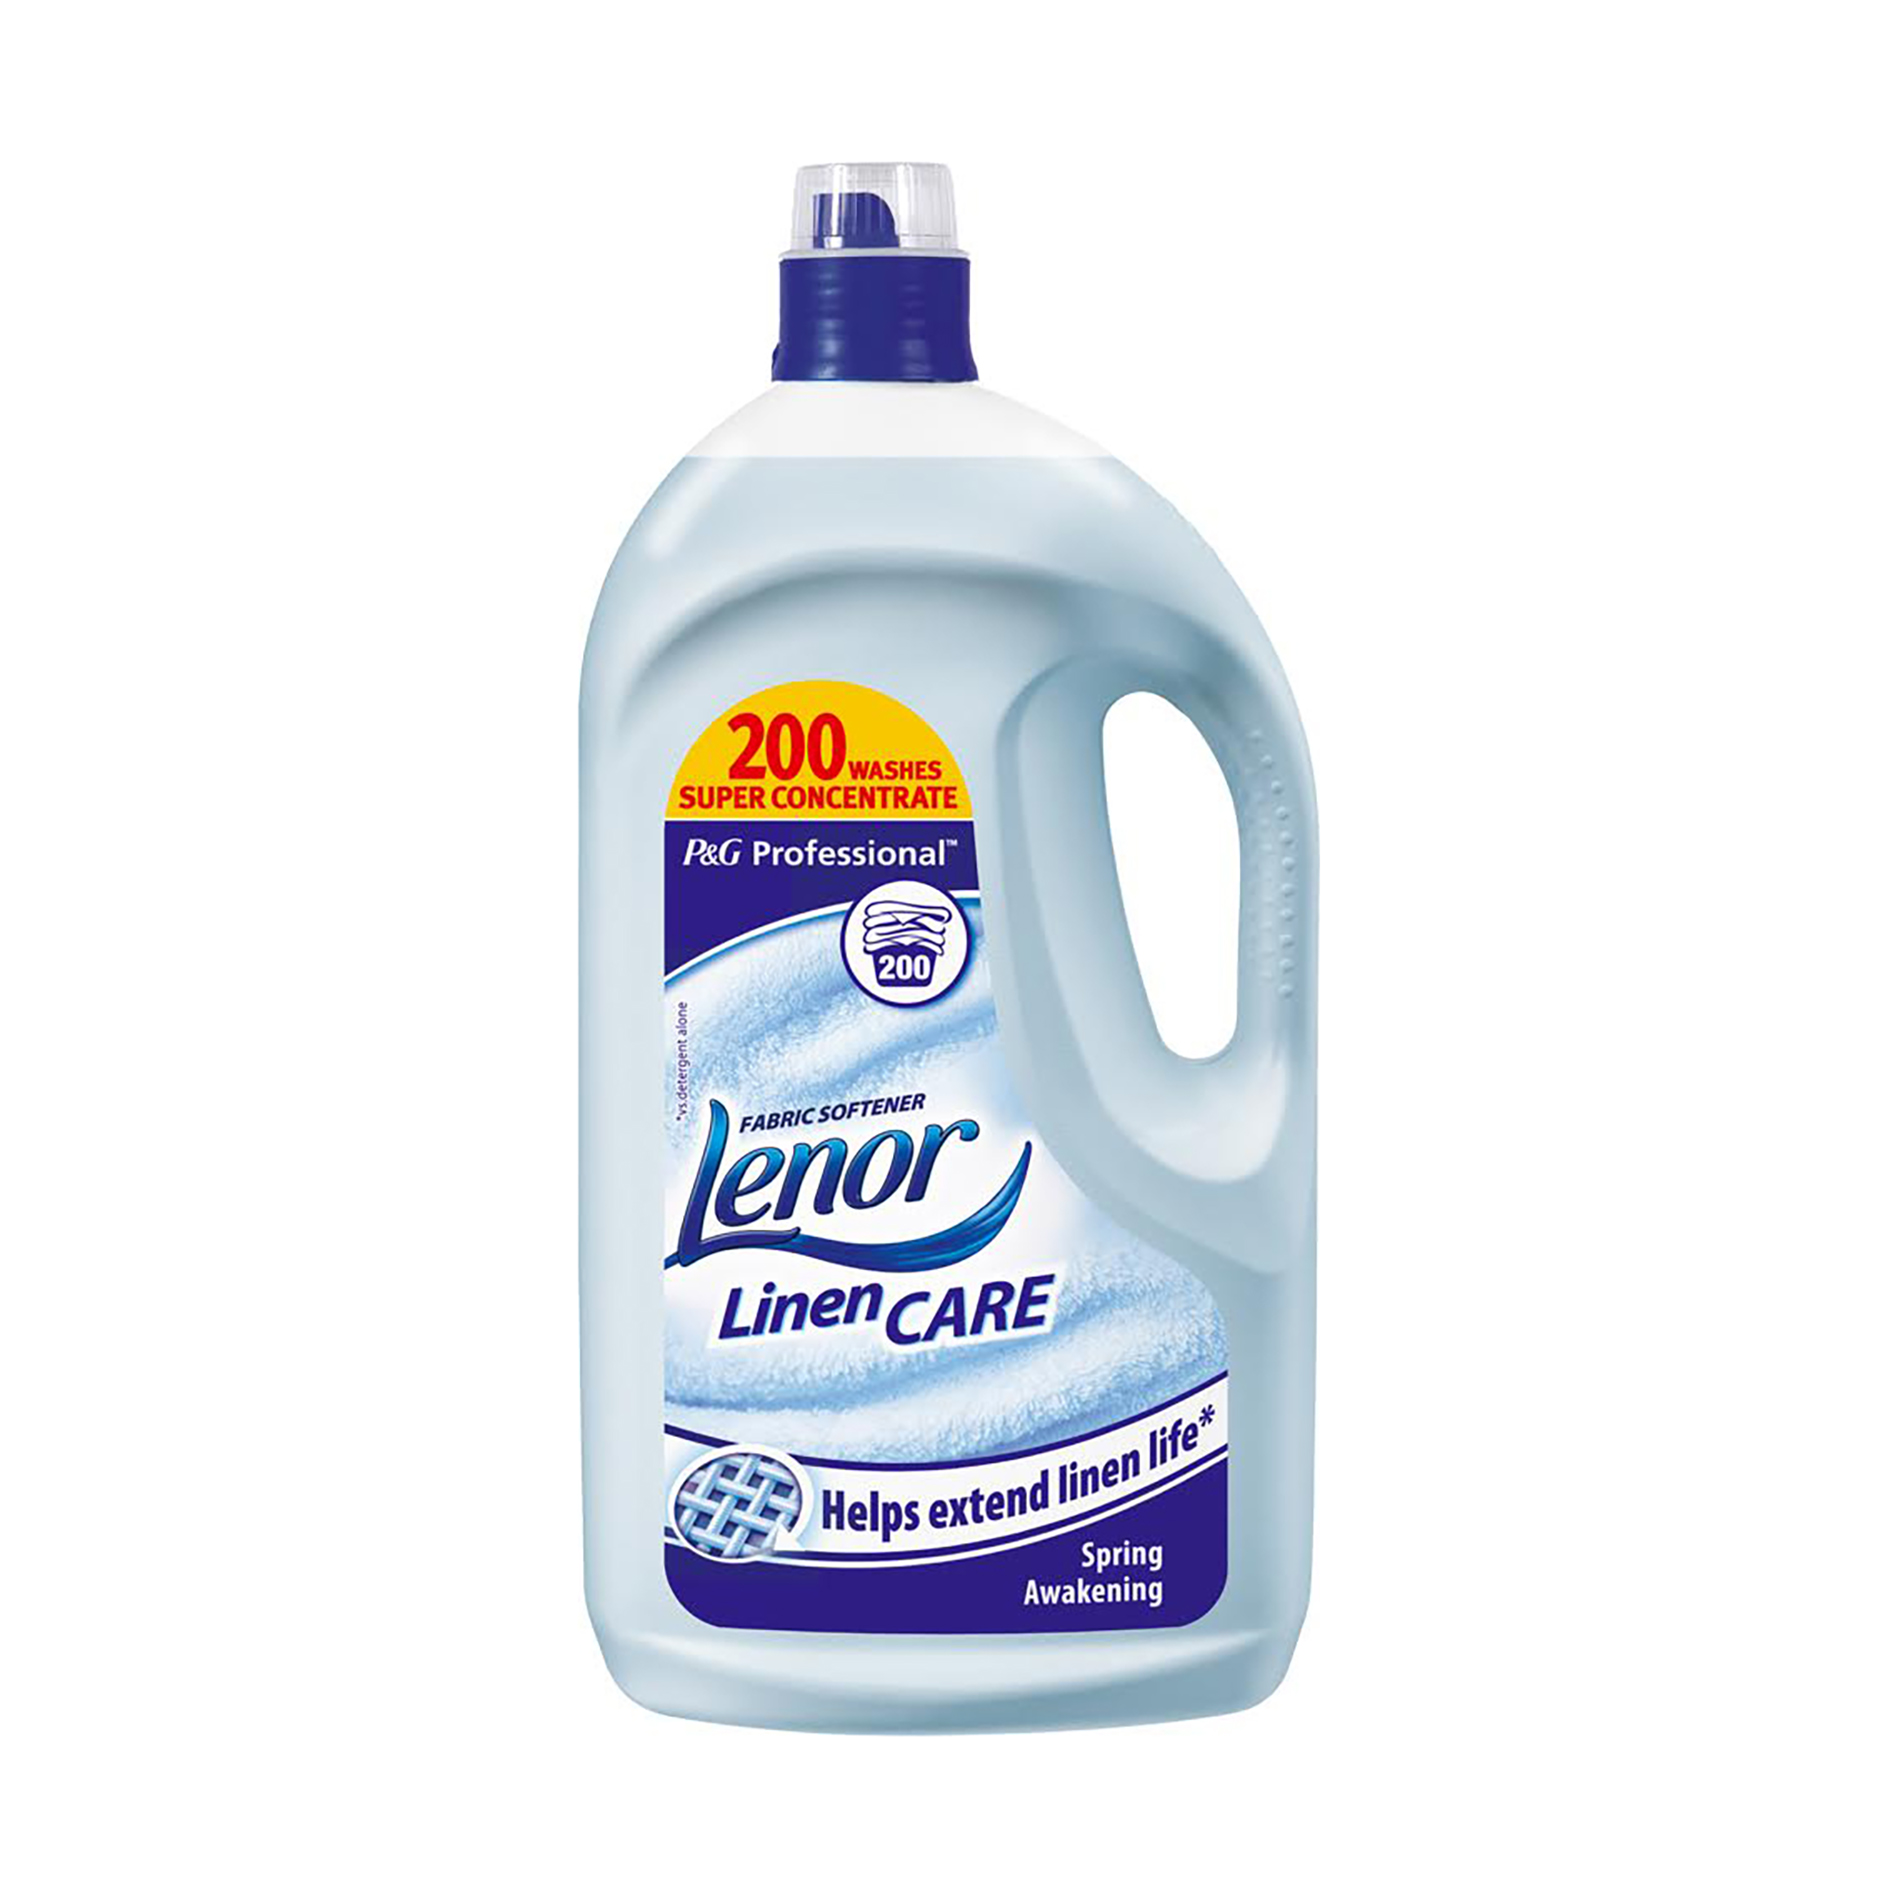 Disinfectant Wipes Lenor Professional Fabric Softener Spring Awakening 200 Washes 4 Litre Ref 87406